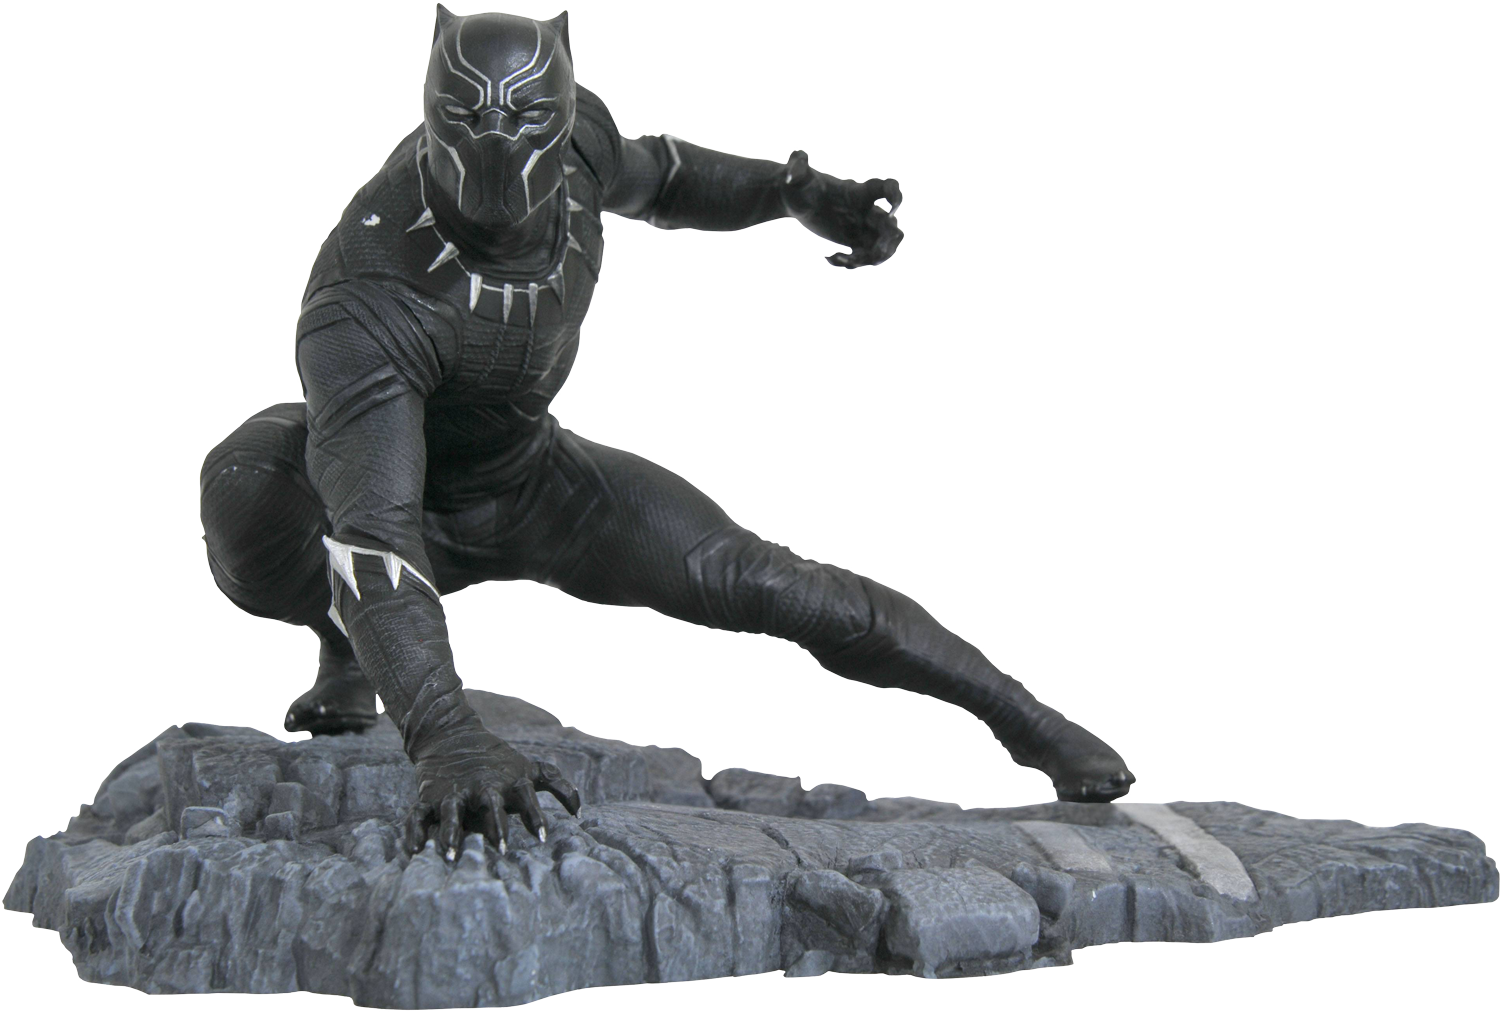 Black panther marvel transparent png. Images pluspng marvelgalleryblackpantherpvcstatuepopcultchanew